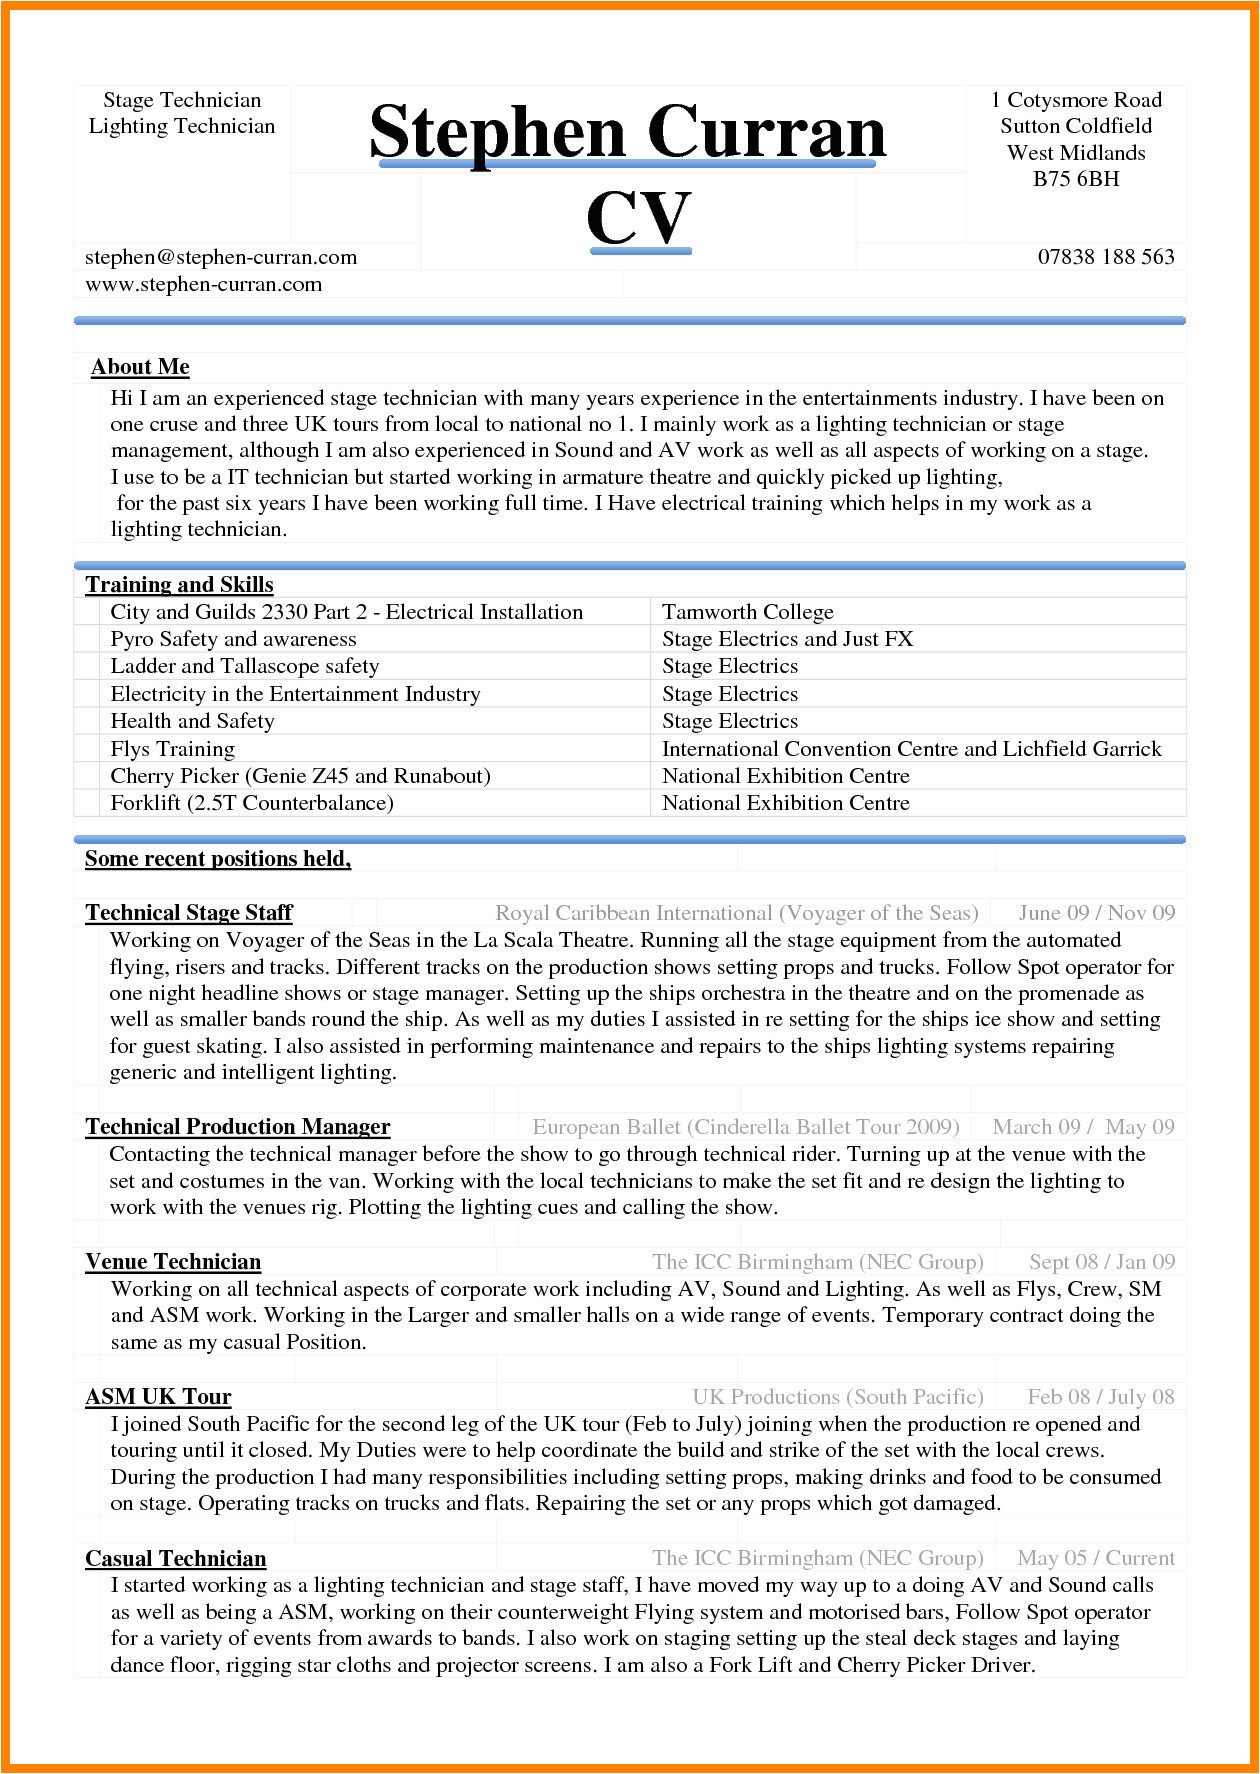 6 curriculum vitae download in ms word